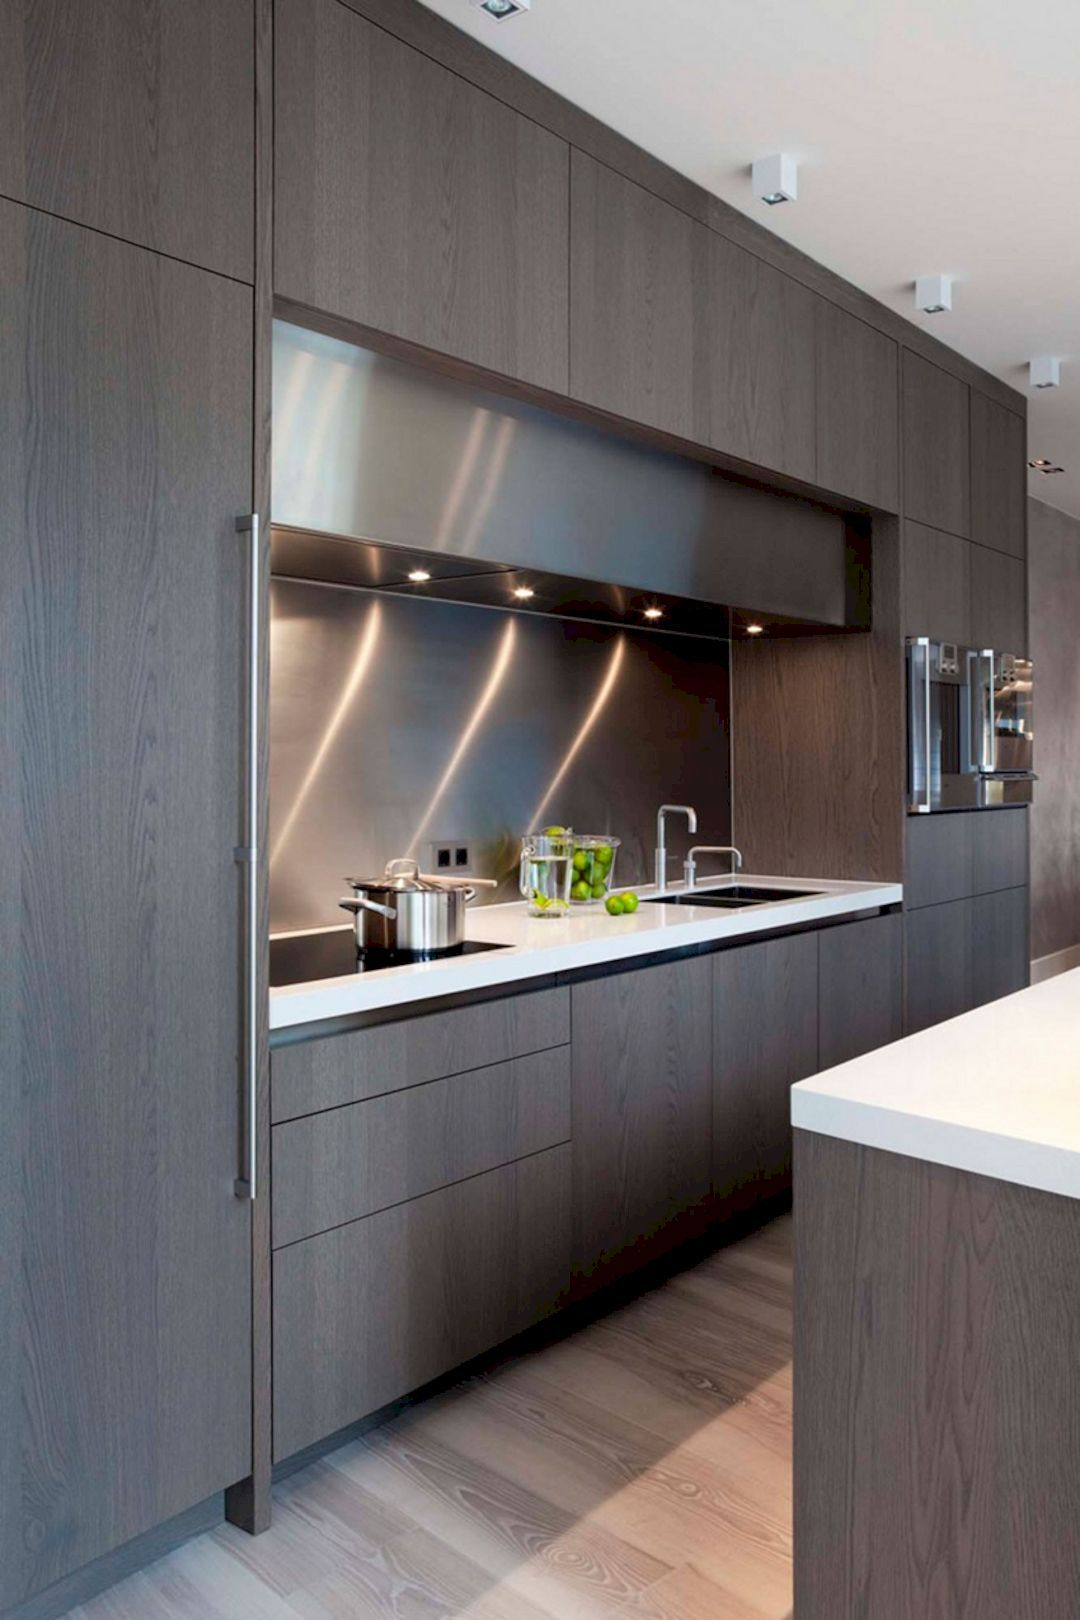 Stylish Modern Kitchen Cabinet: 127 Design Ideas | Modern Kitchen .